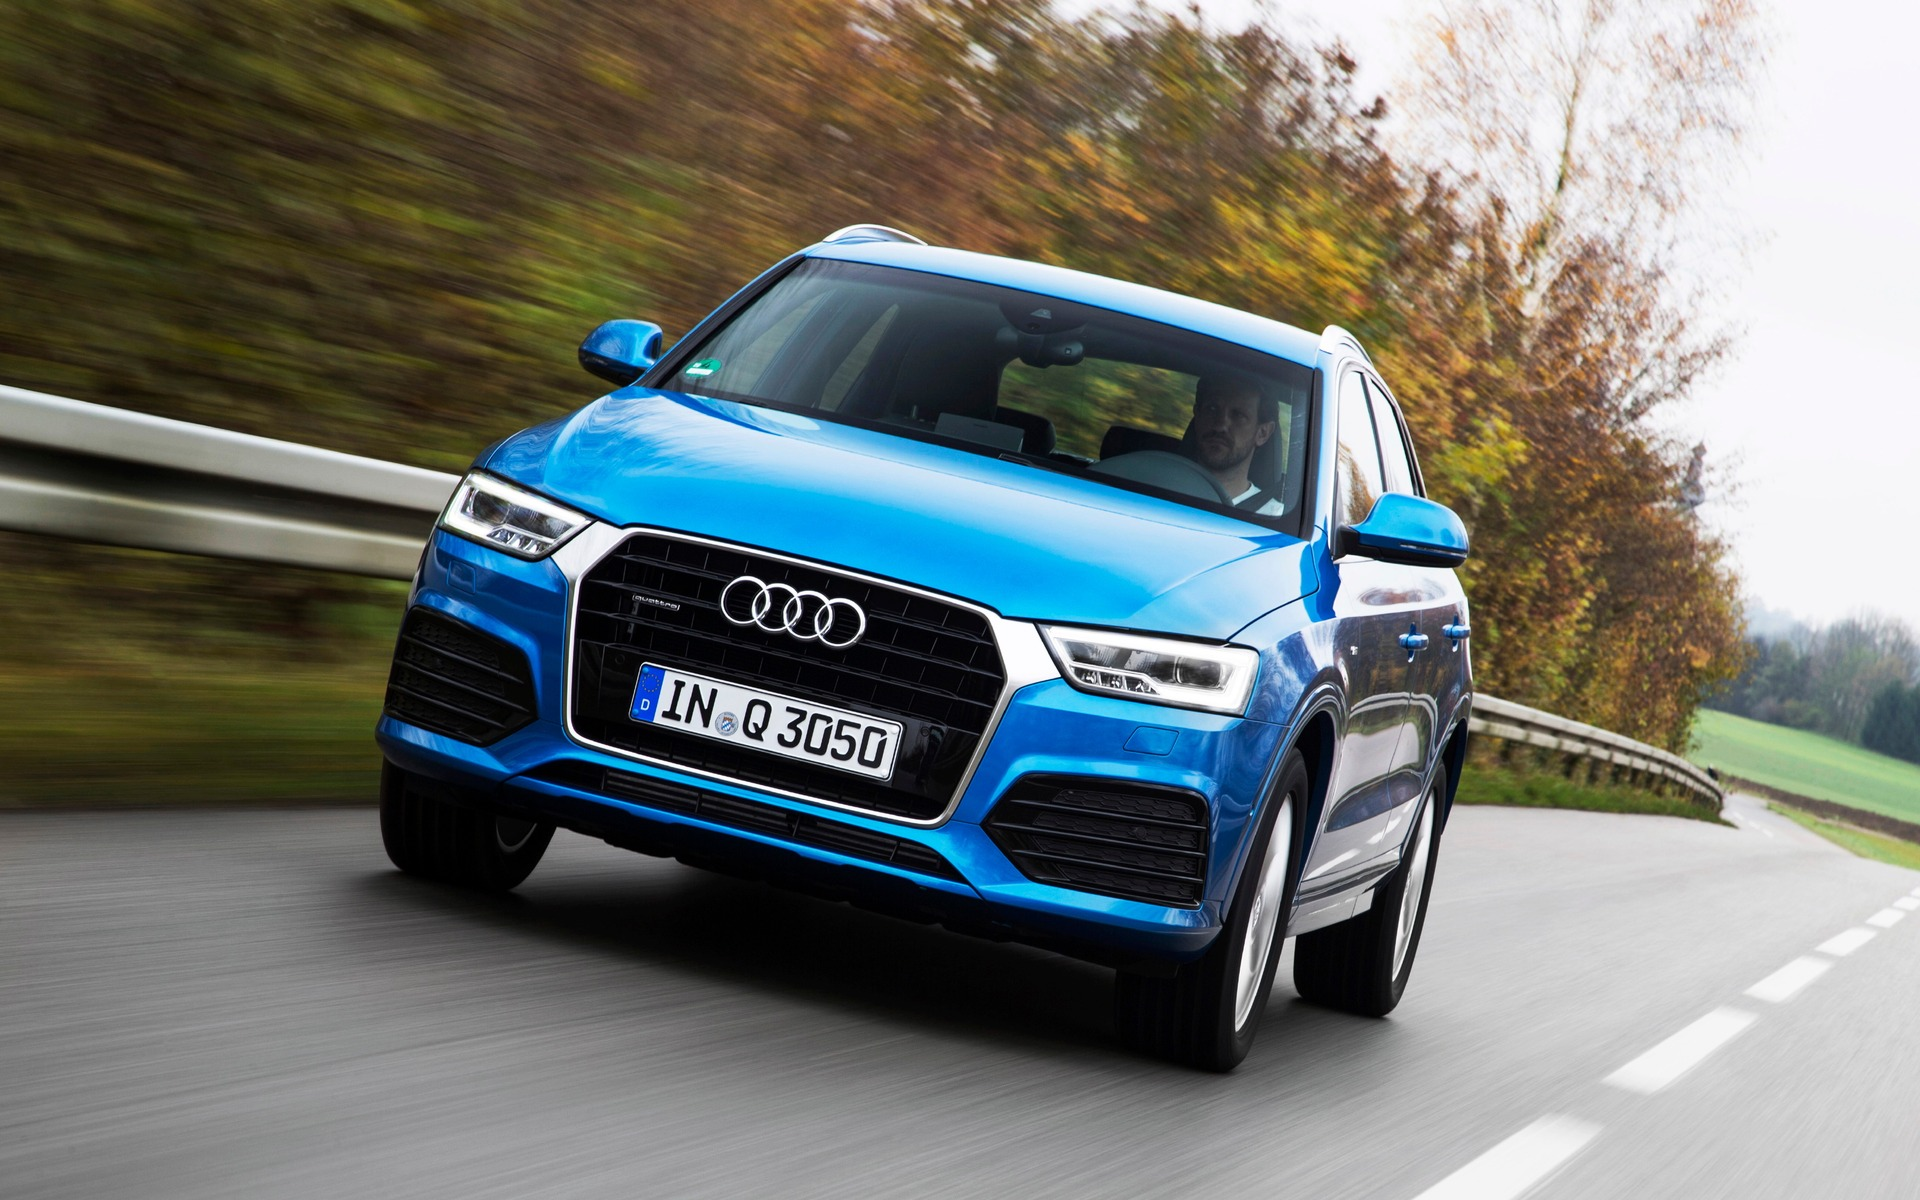 2016 audi q3 new look for the compact luxury suv the car guide. Black Bedroom Furniture Sets. Home Design Ideas